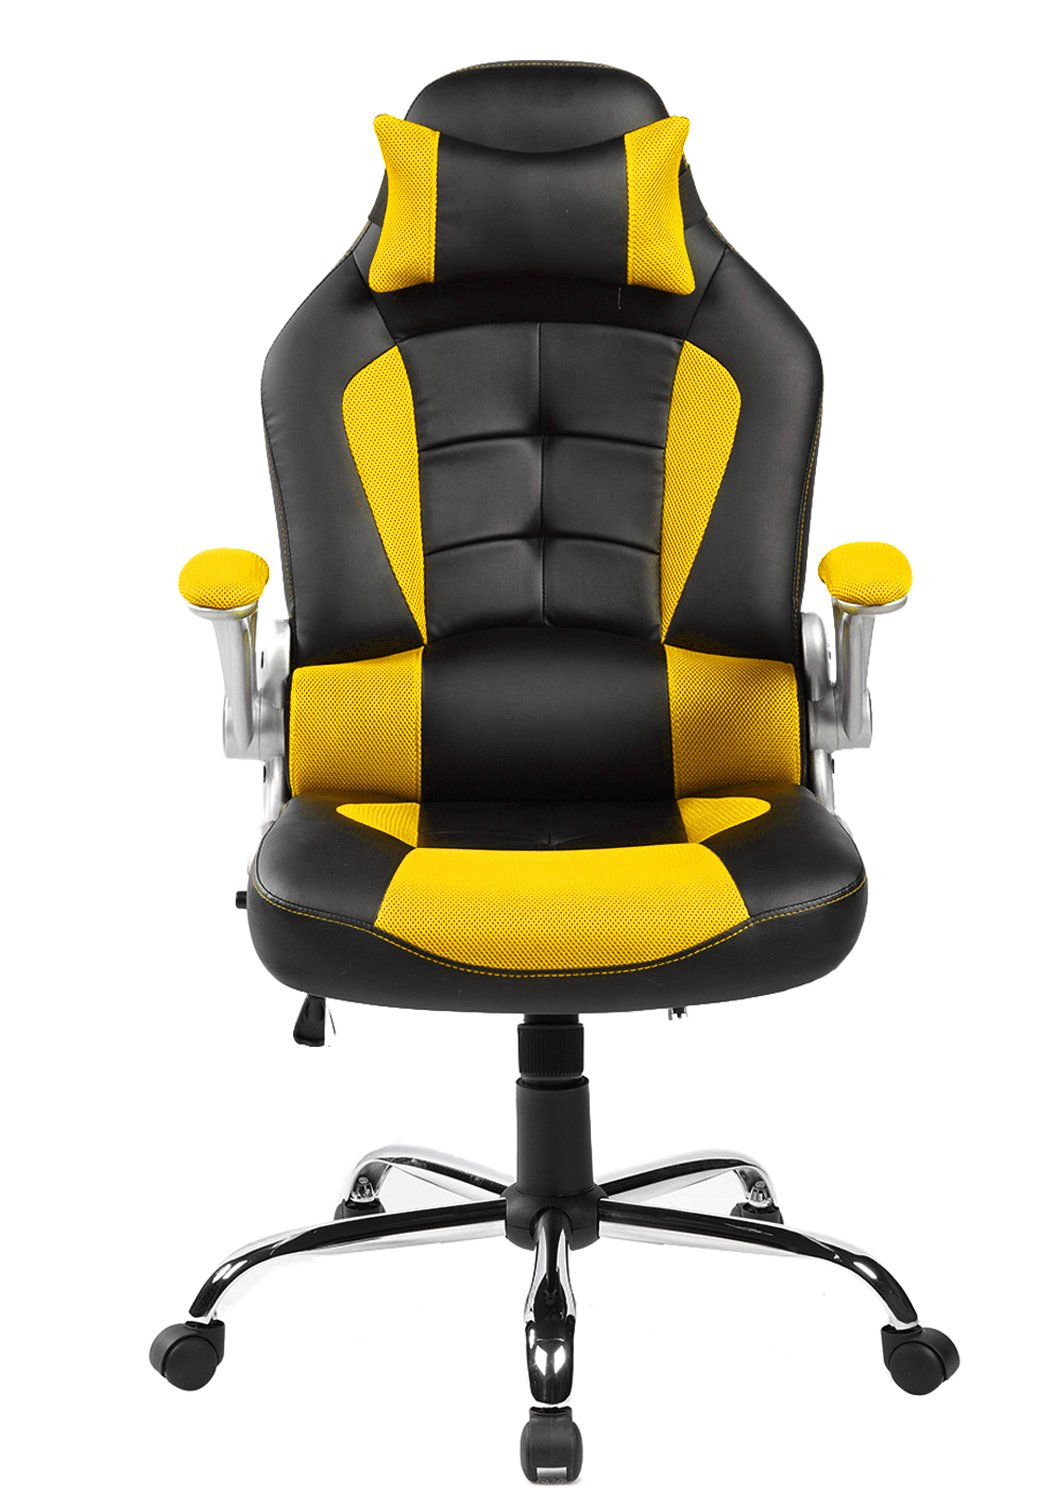 amazoncom merax king series highback ergonomic pu leather office chair racing style swivel chair computer desk lumbar support chair napping chair